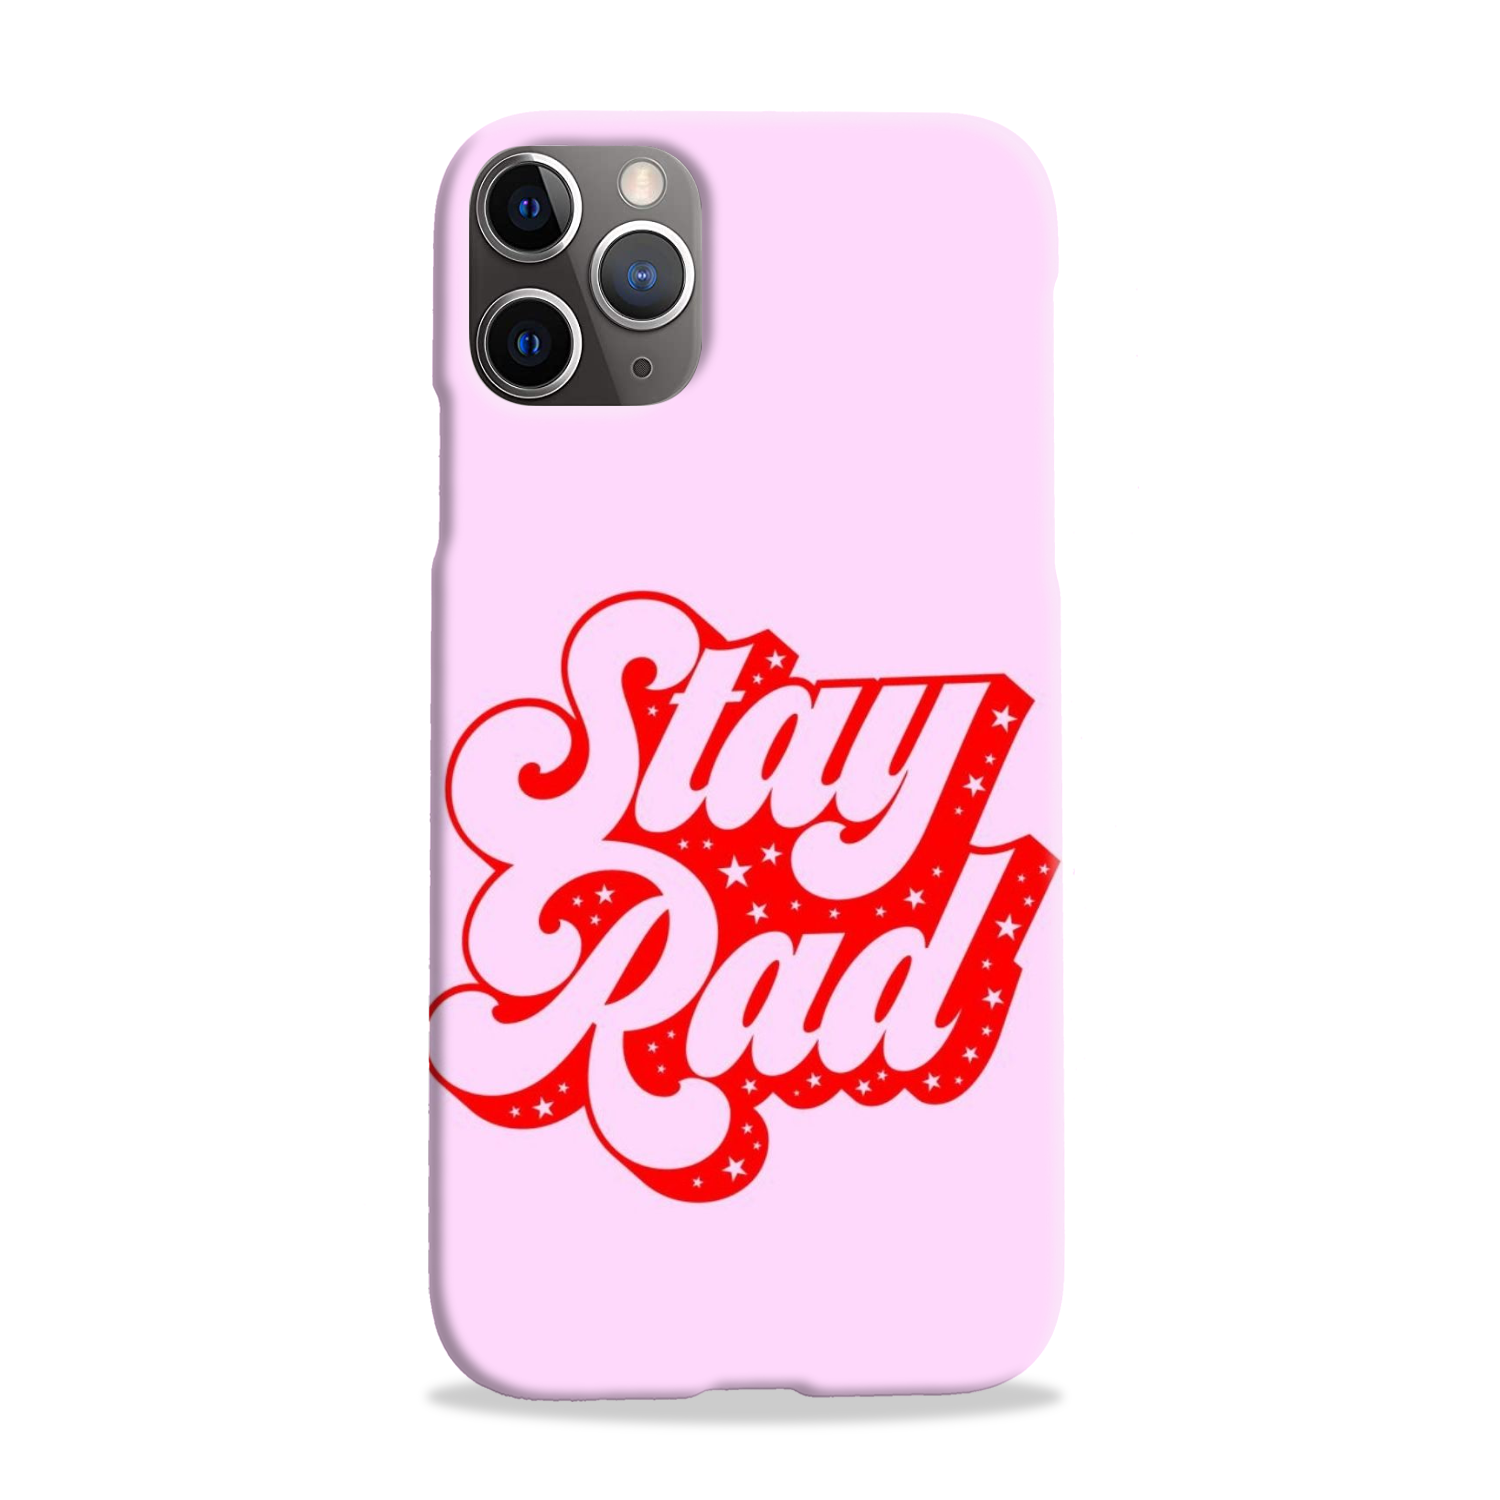 Stay Rad - Style Loft Cases